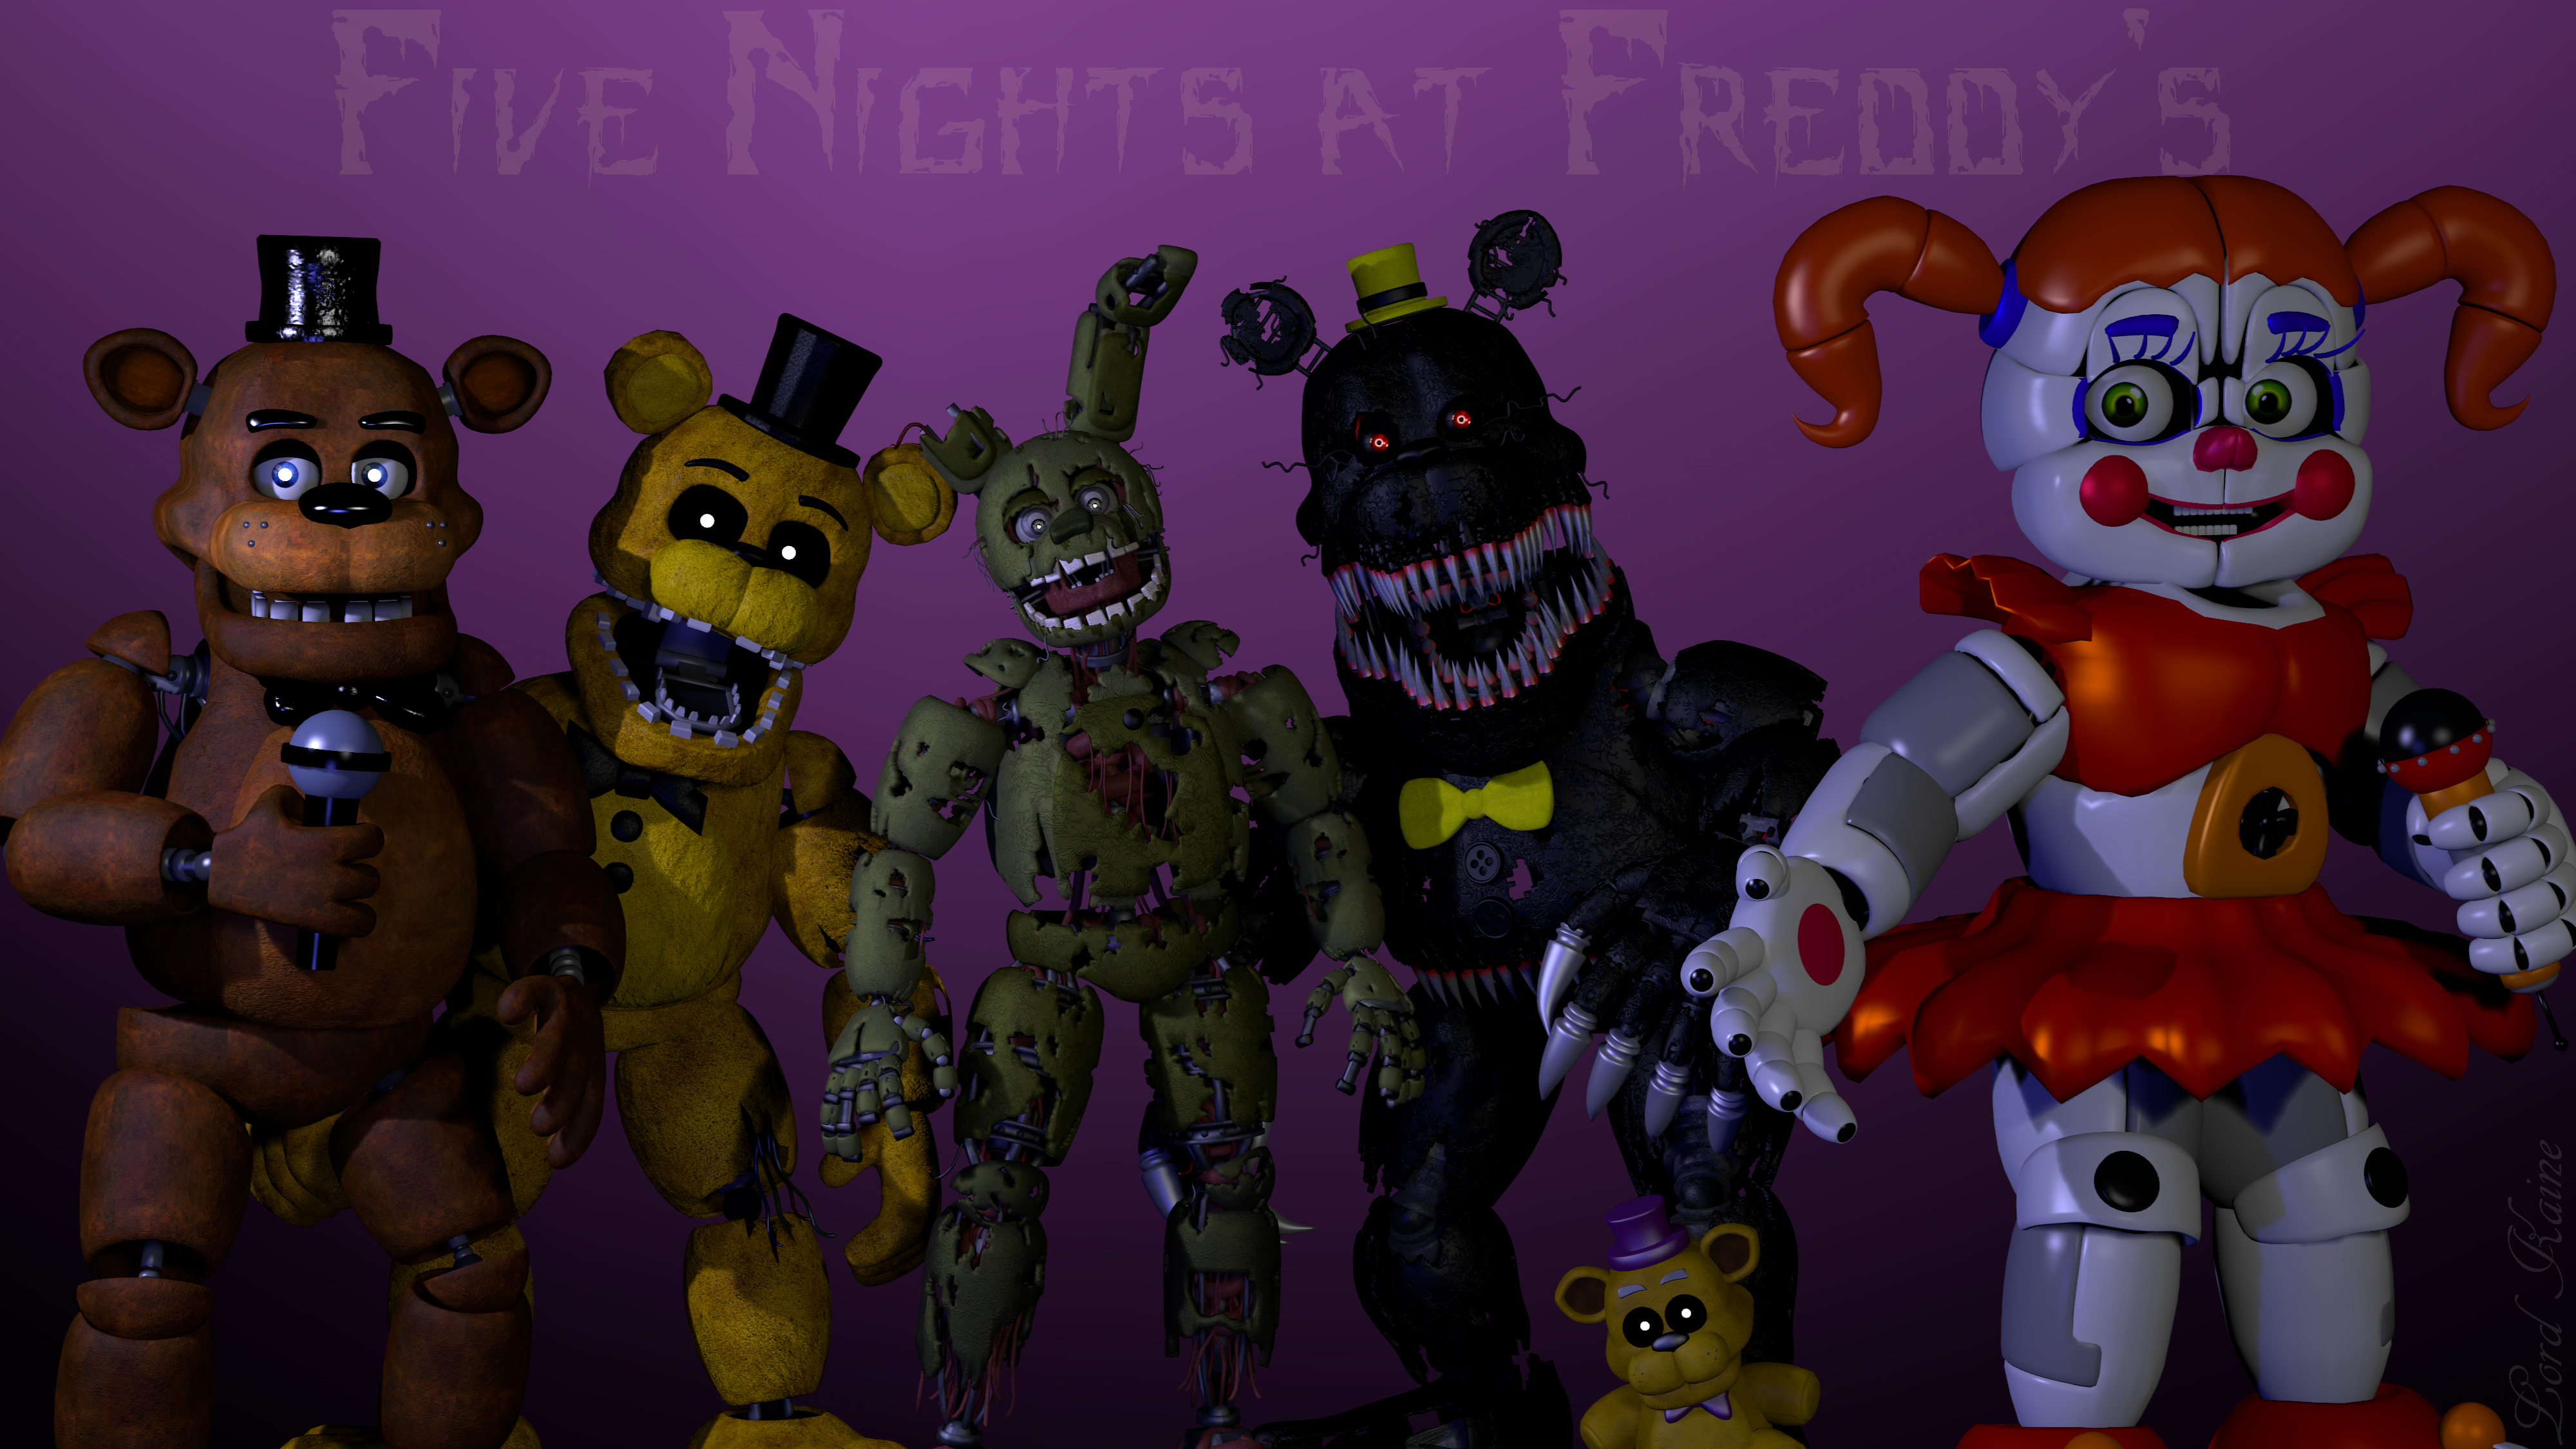 five nights at freddy's wallpaper [remake]lord-kaine on deviantart